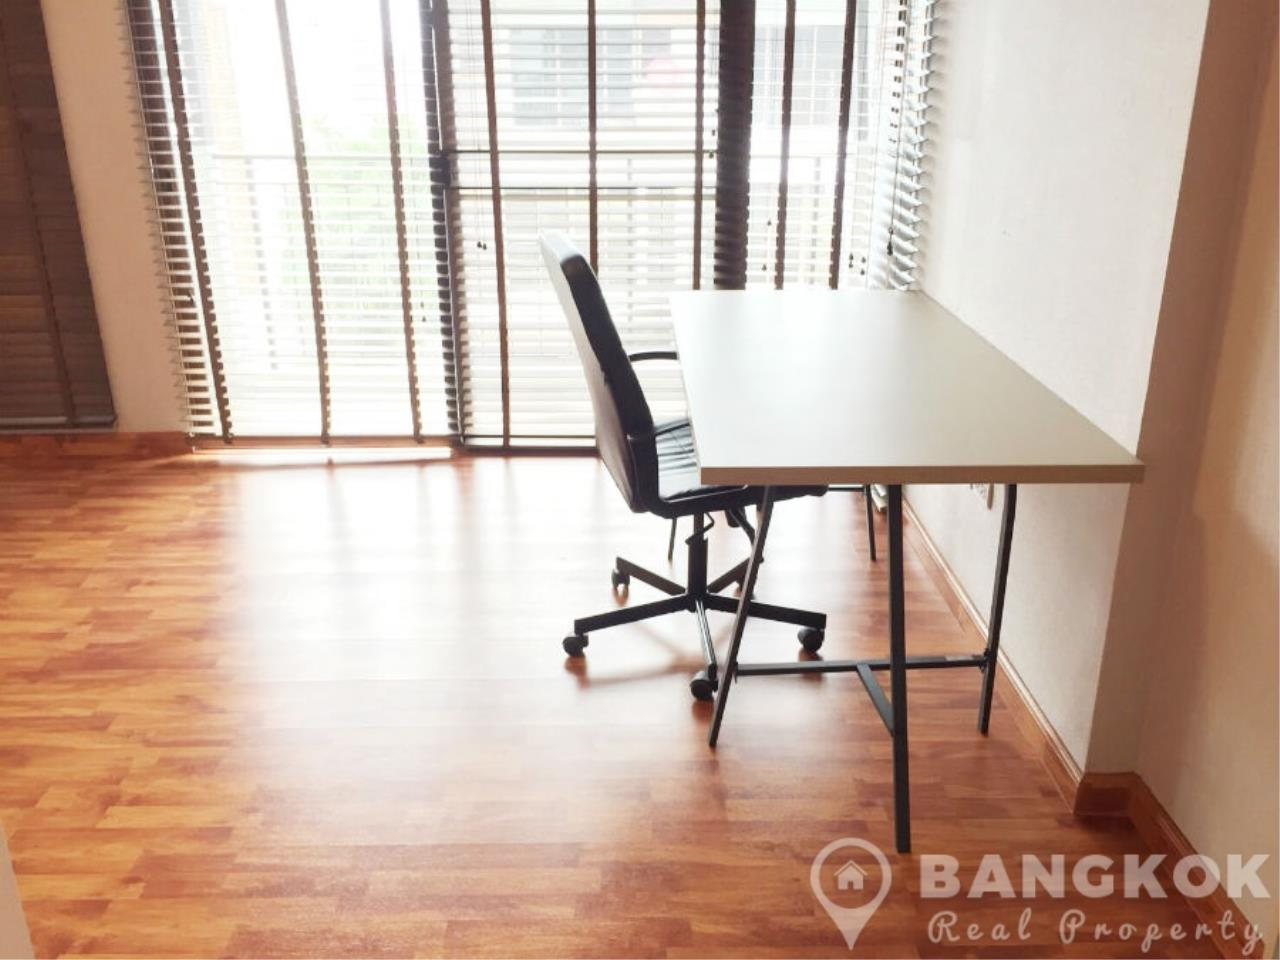 Bangkok Real Property Agency's Spacious 1st Rental 3 Bed 4 Bath Bangchak Townhouse near BTS 7